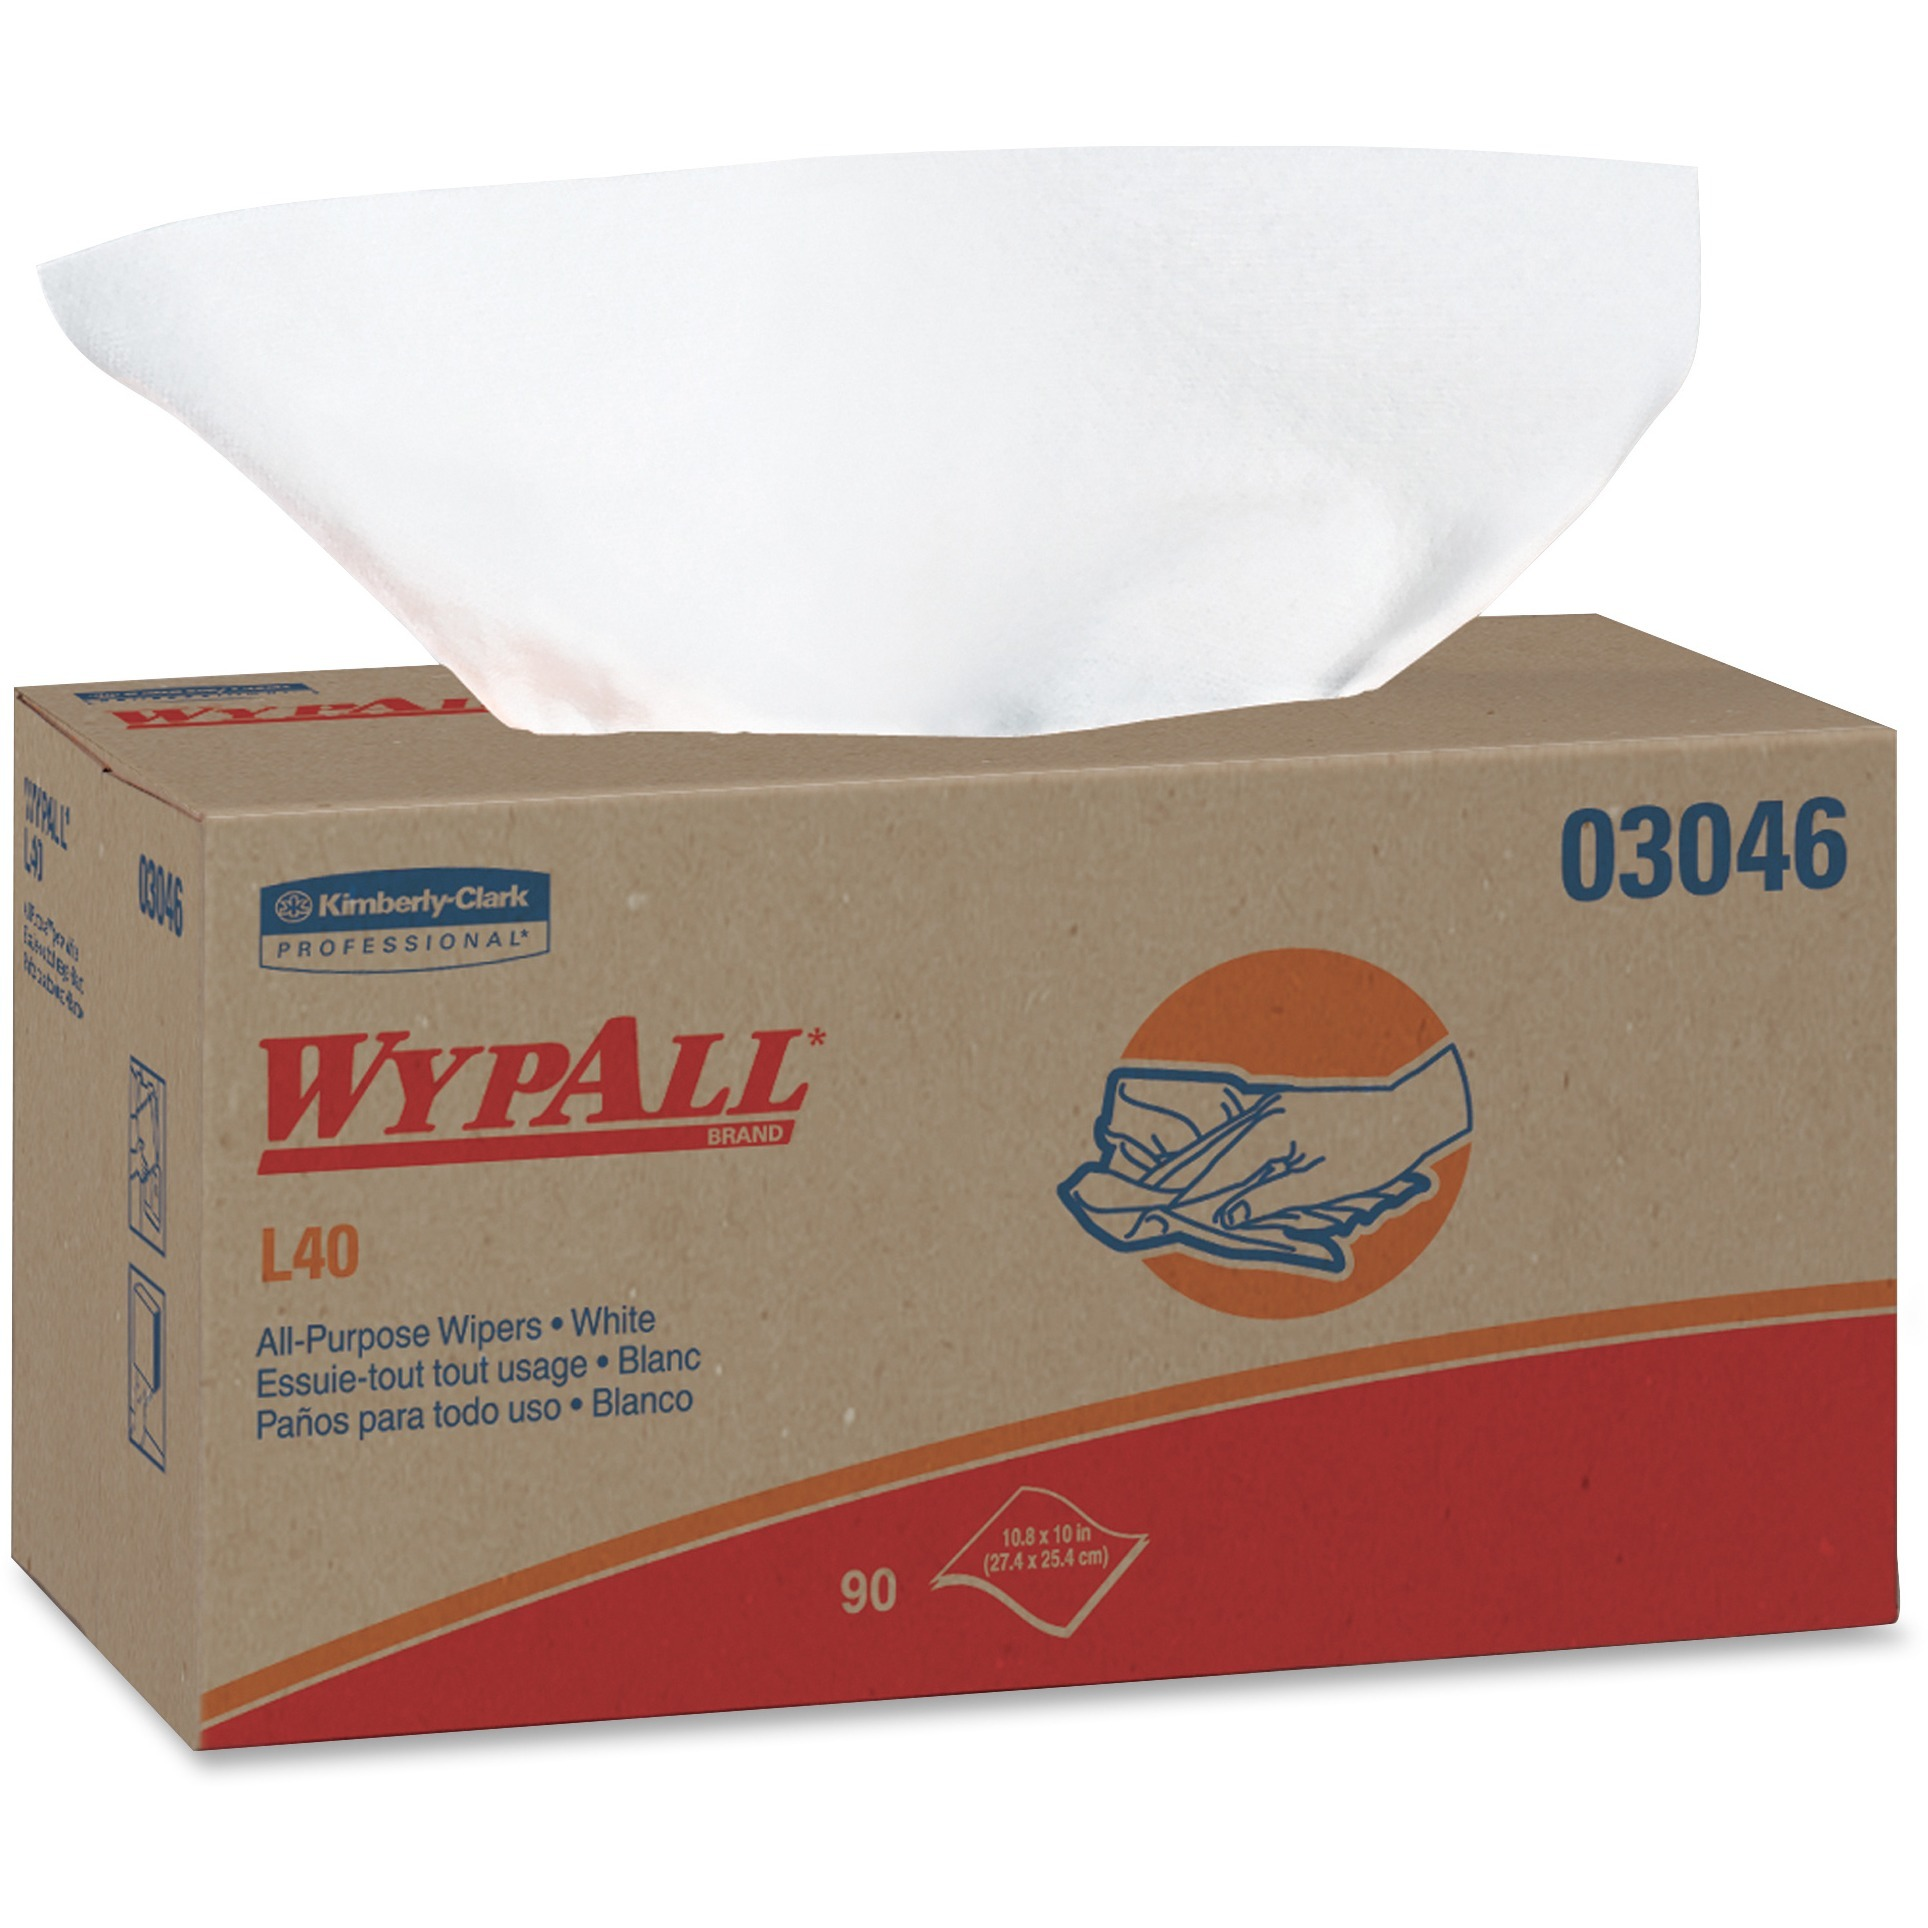 Wypall, KCC03046, L40 Cleaning Wipers, 9 / Carton, White